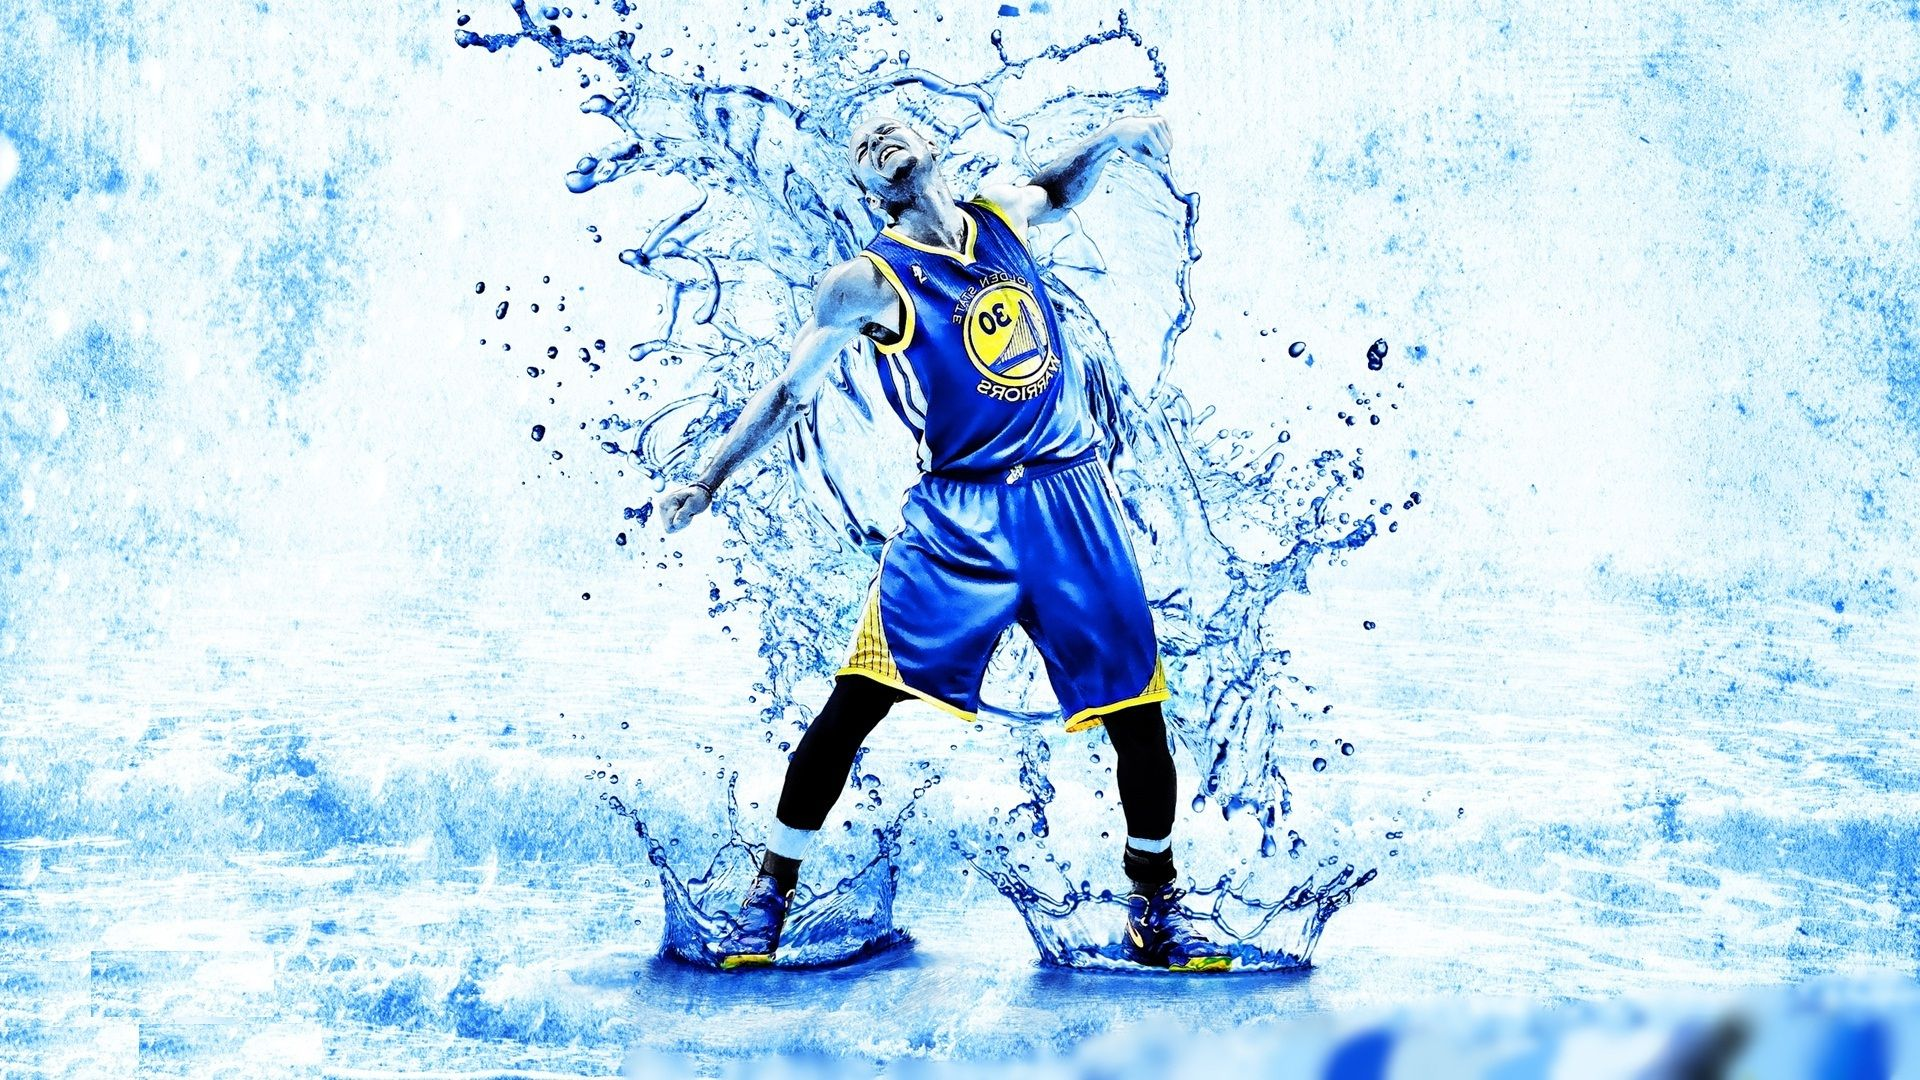 Stephen Curry Ps3 Background Stephen curry wallpaper hd